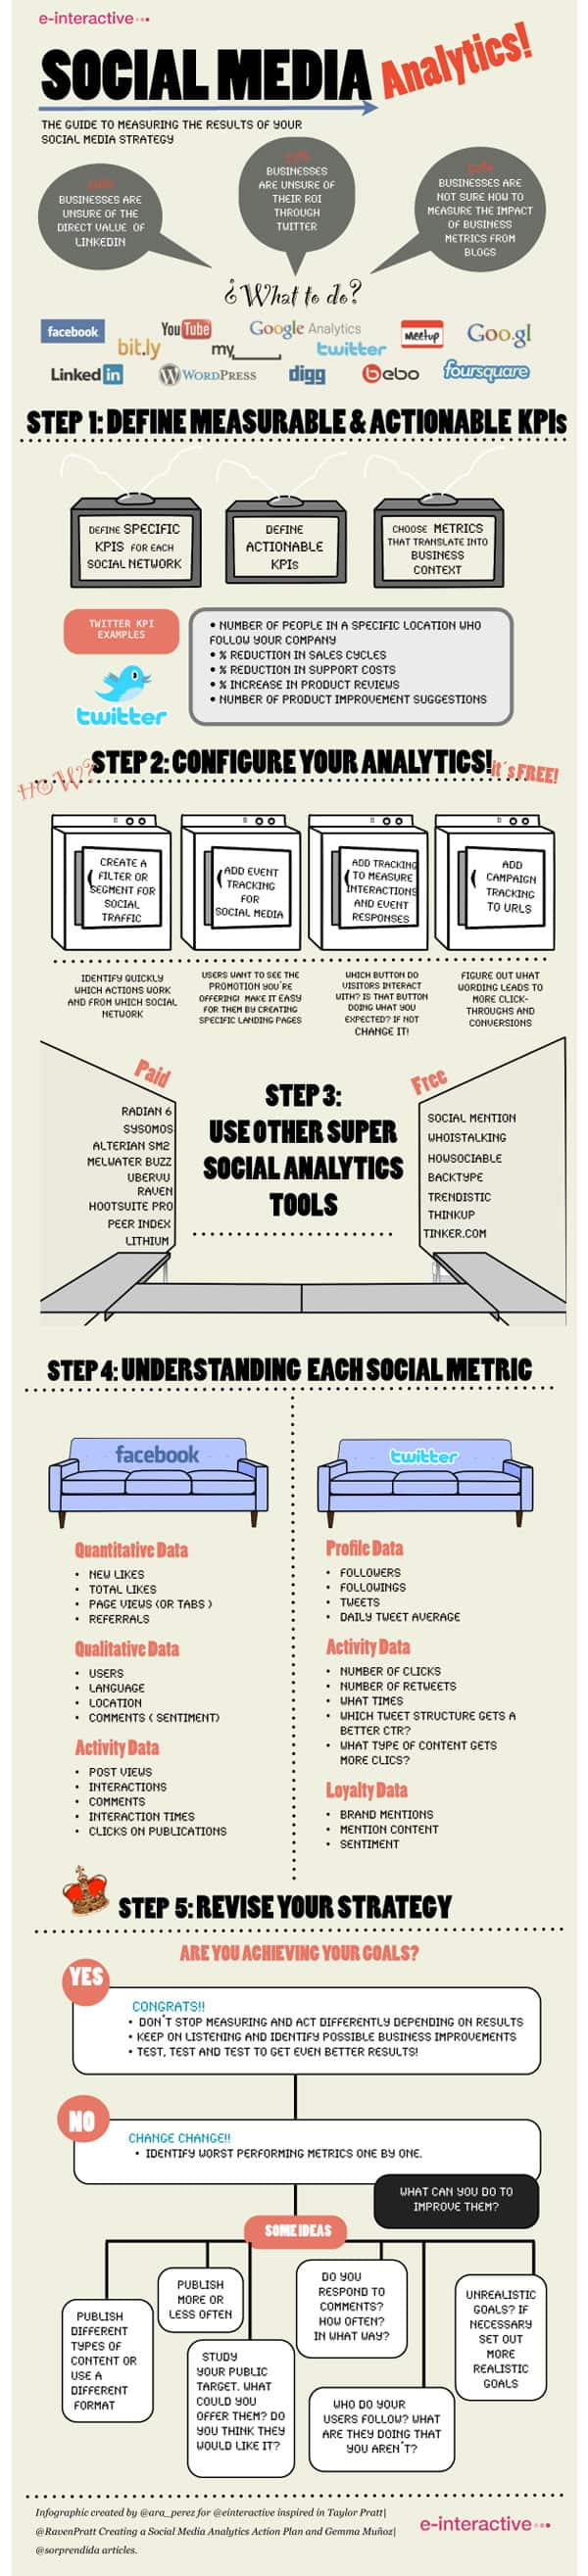 Social Media Marketing Infographic: Social Media Analytics